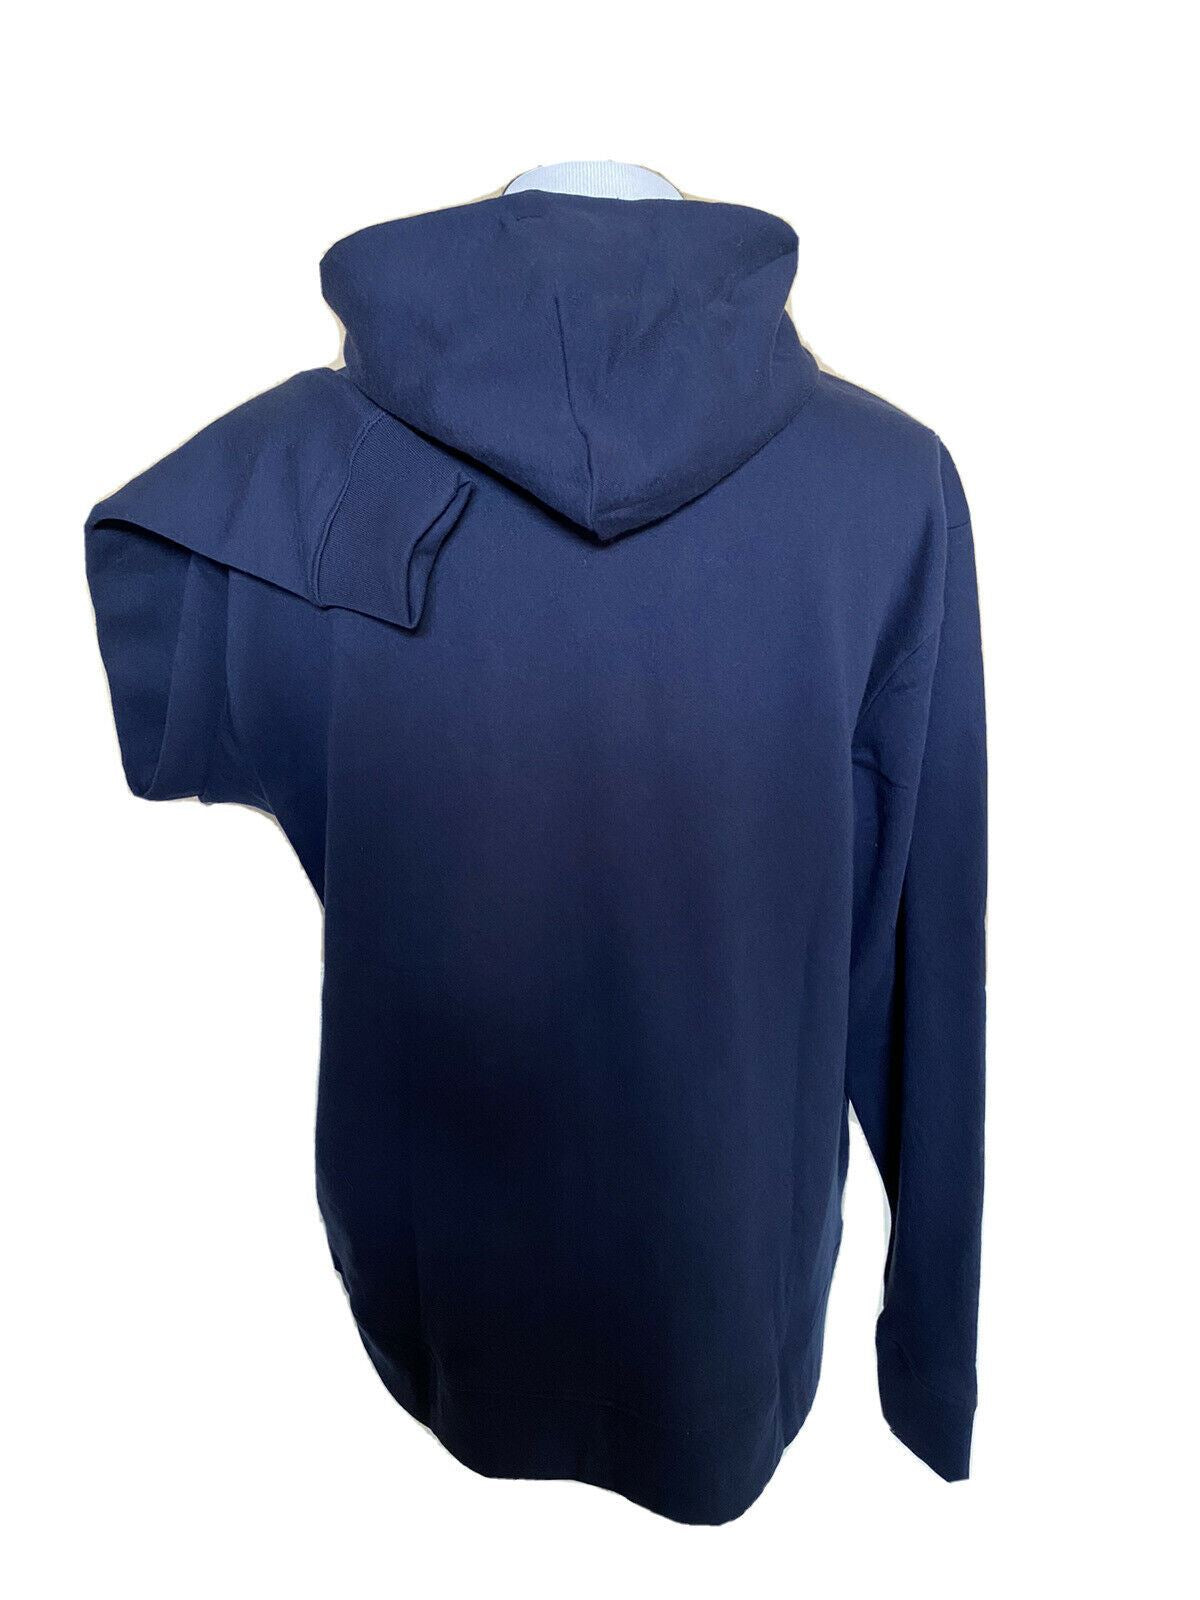 NWT $109.99 Polo Ralph Lauren Navy Sailor Bear Navy Blue Sweater with Hoodie 2XB